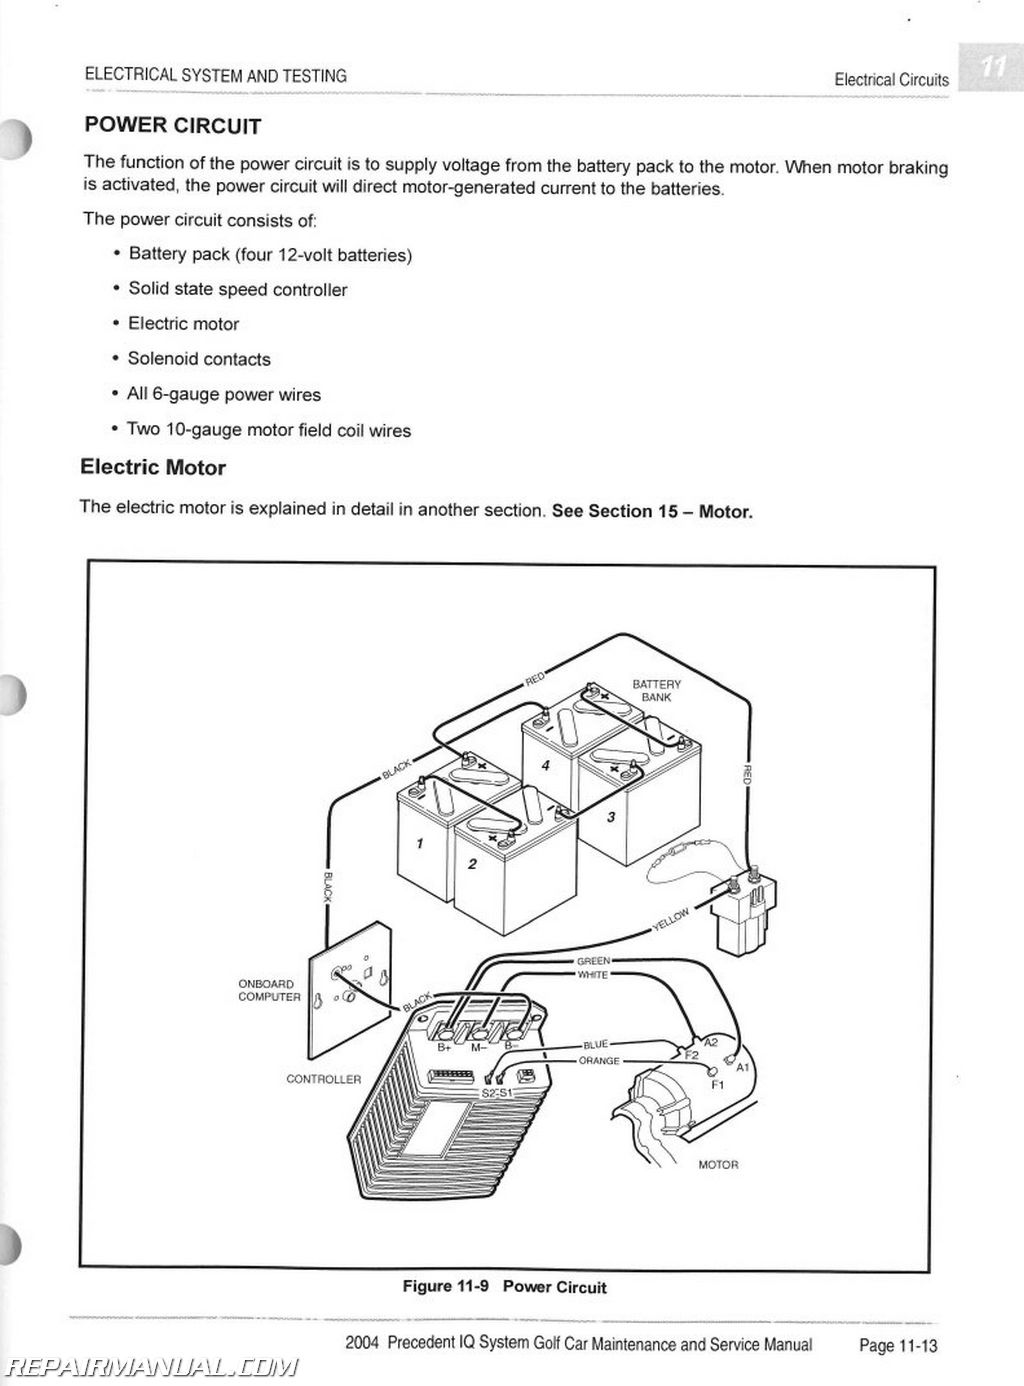 i am looking for a wiring diagram for a 2004 48 club car precedent, Wiring diagram